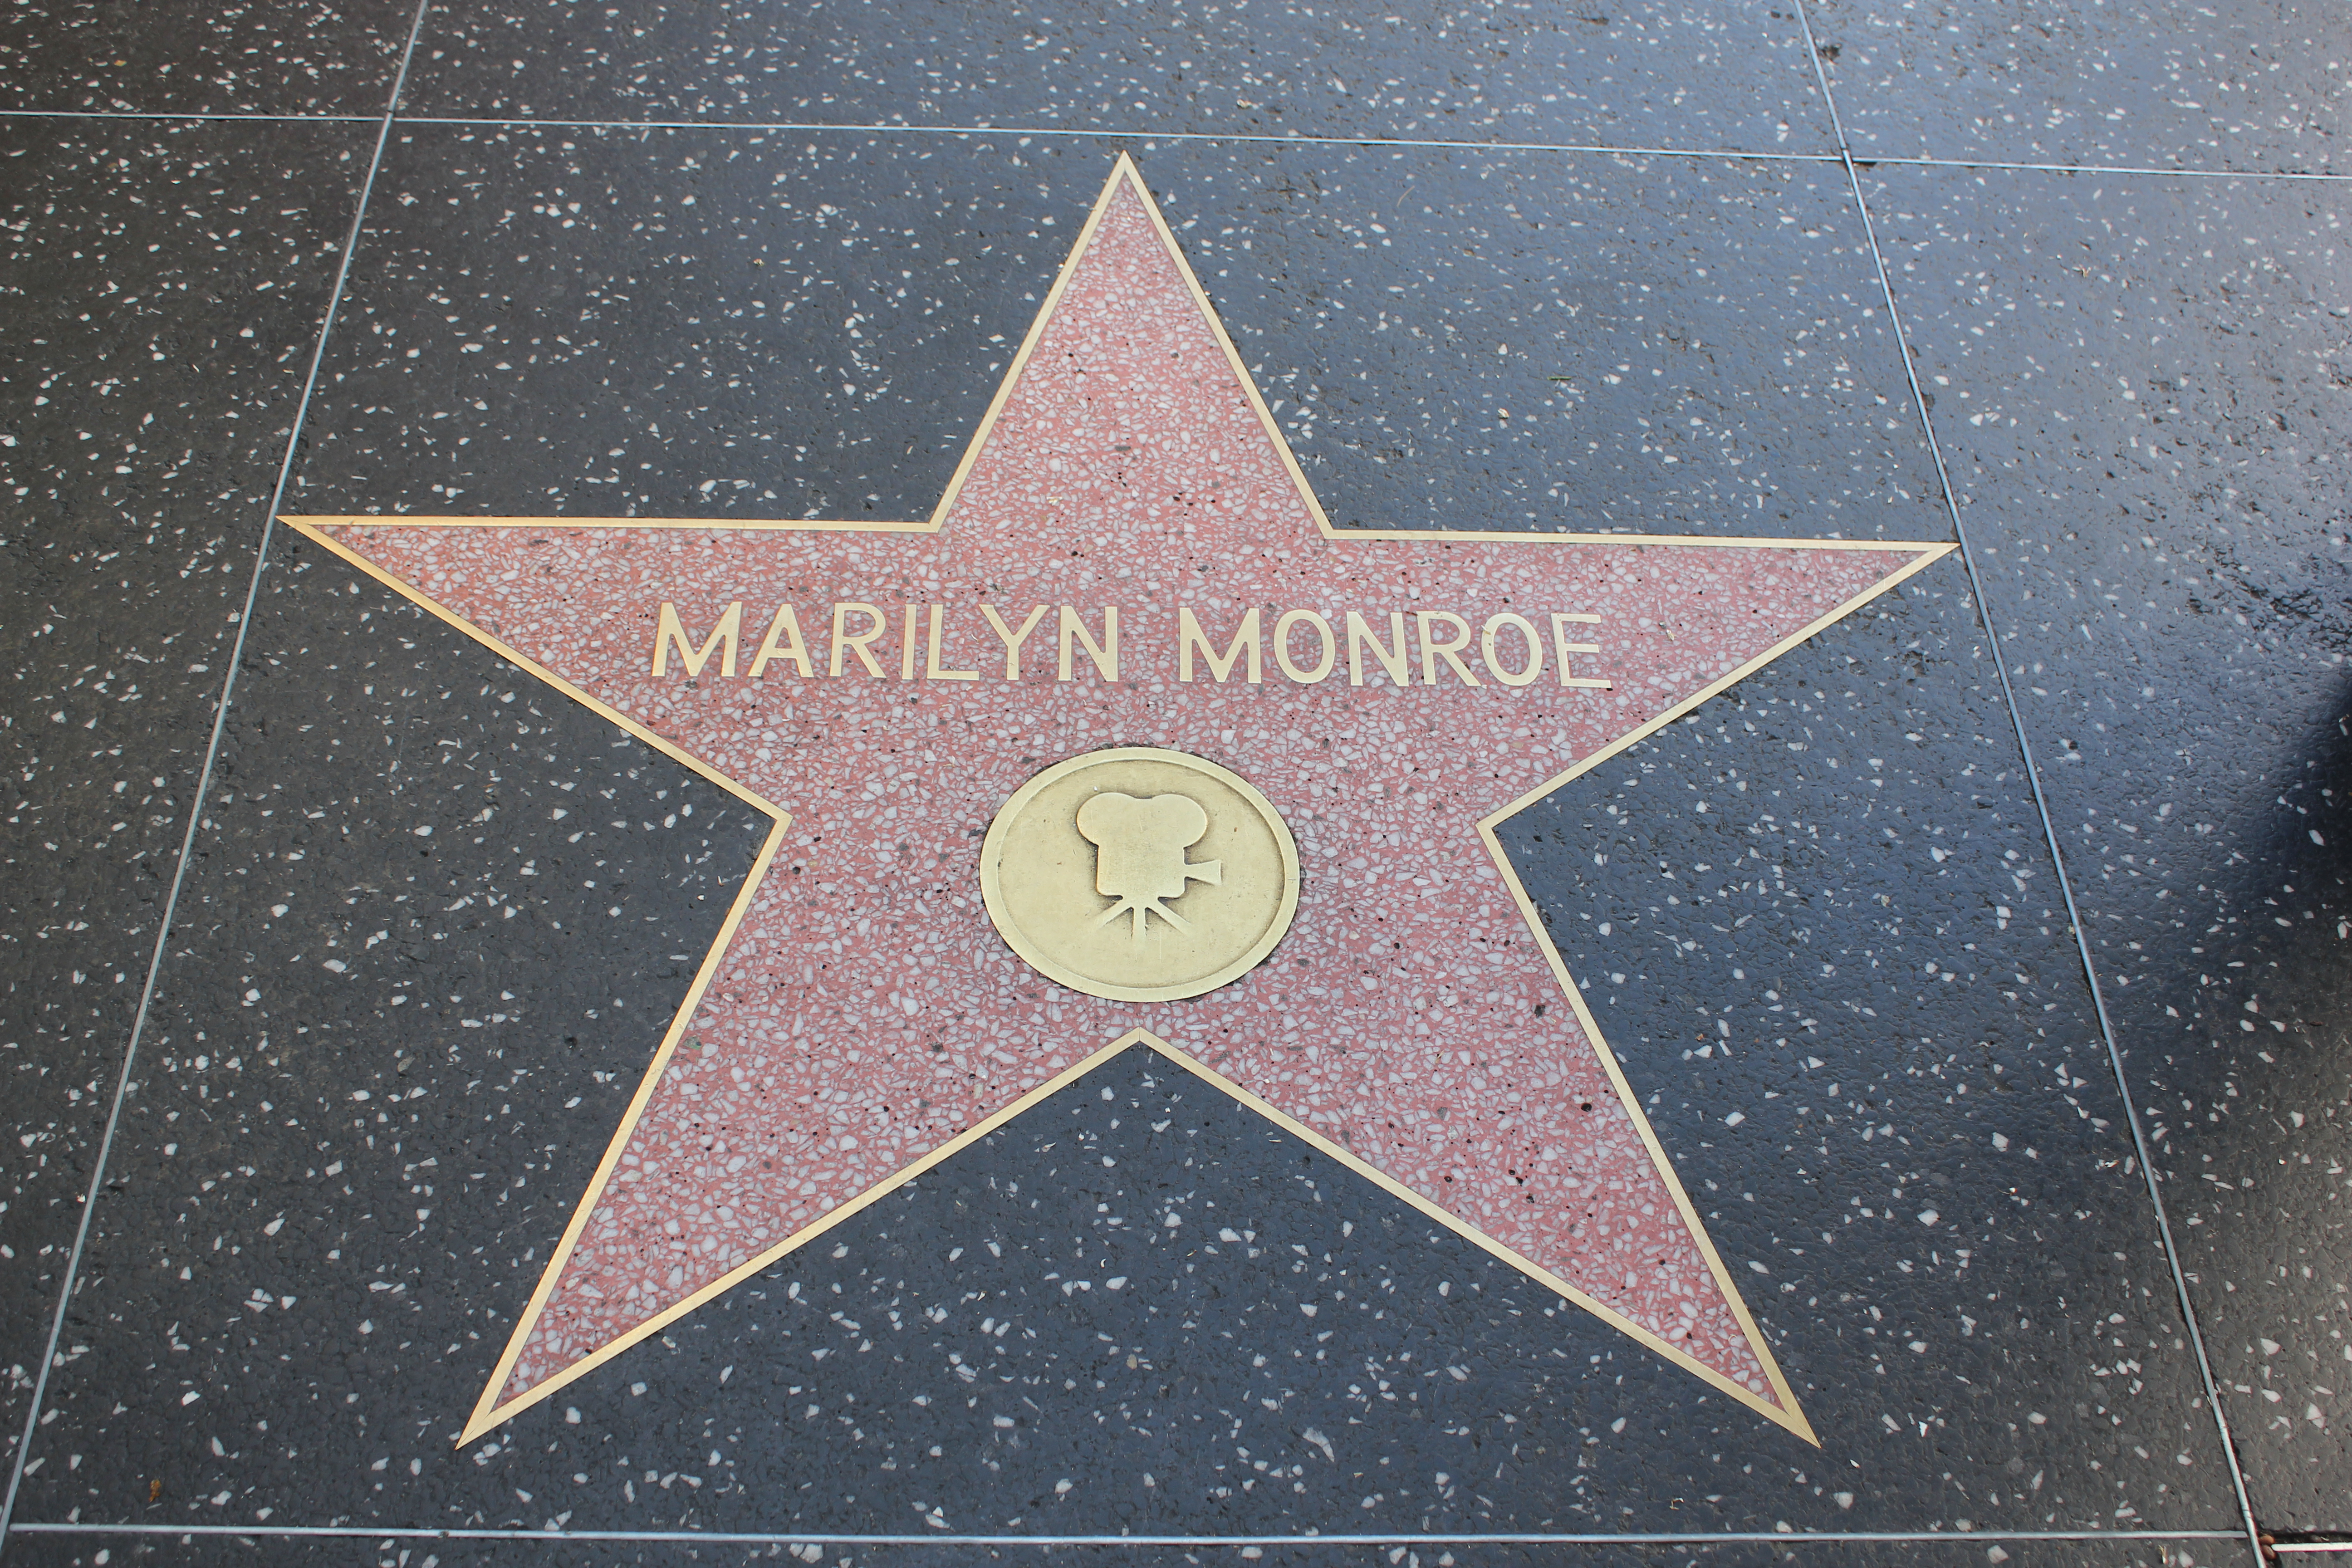 the life of marilyn monroe in hollywood High erotic myth of the twentieth century, the bitterness and frustration marked however sentimental and professional life on august 5, 1962, the american actress marilyn monroe, the great.